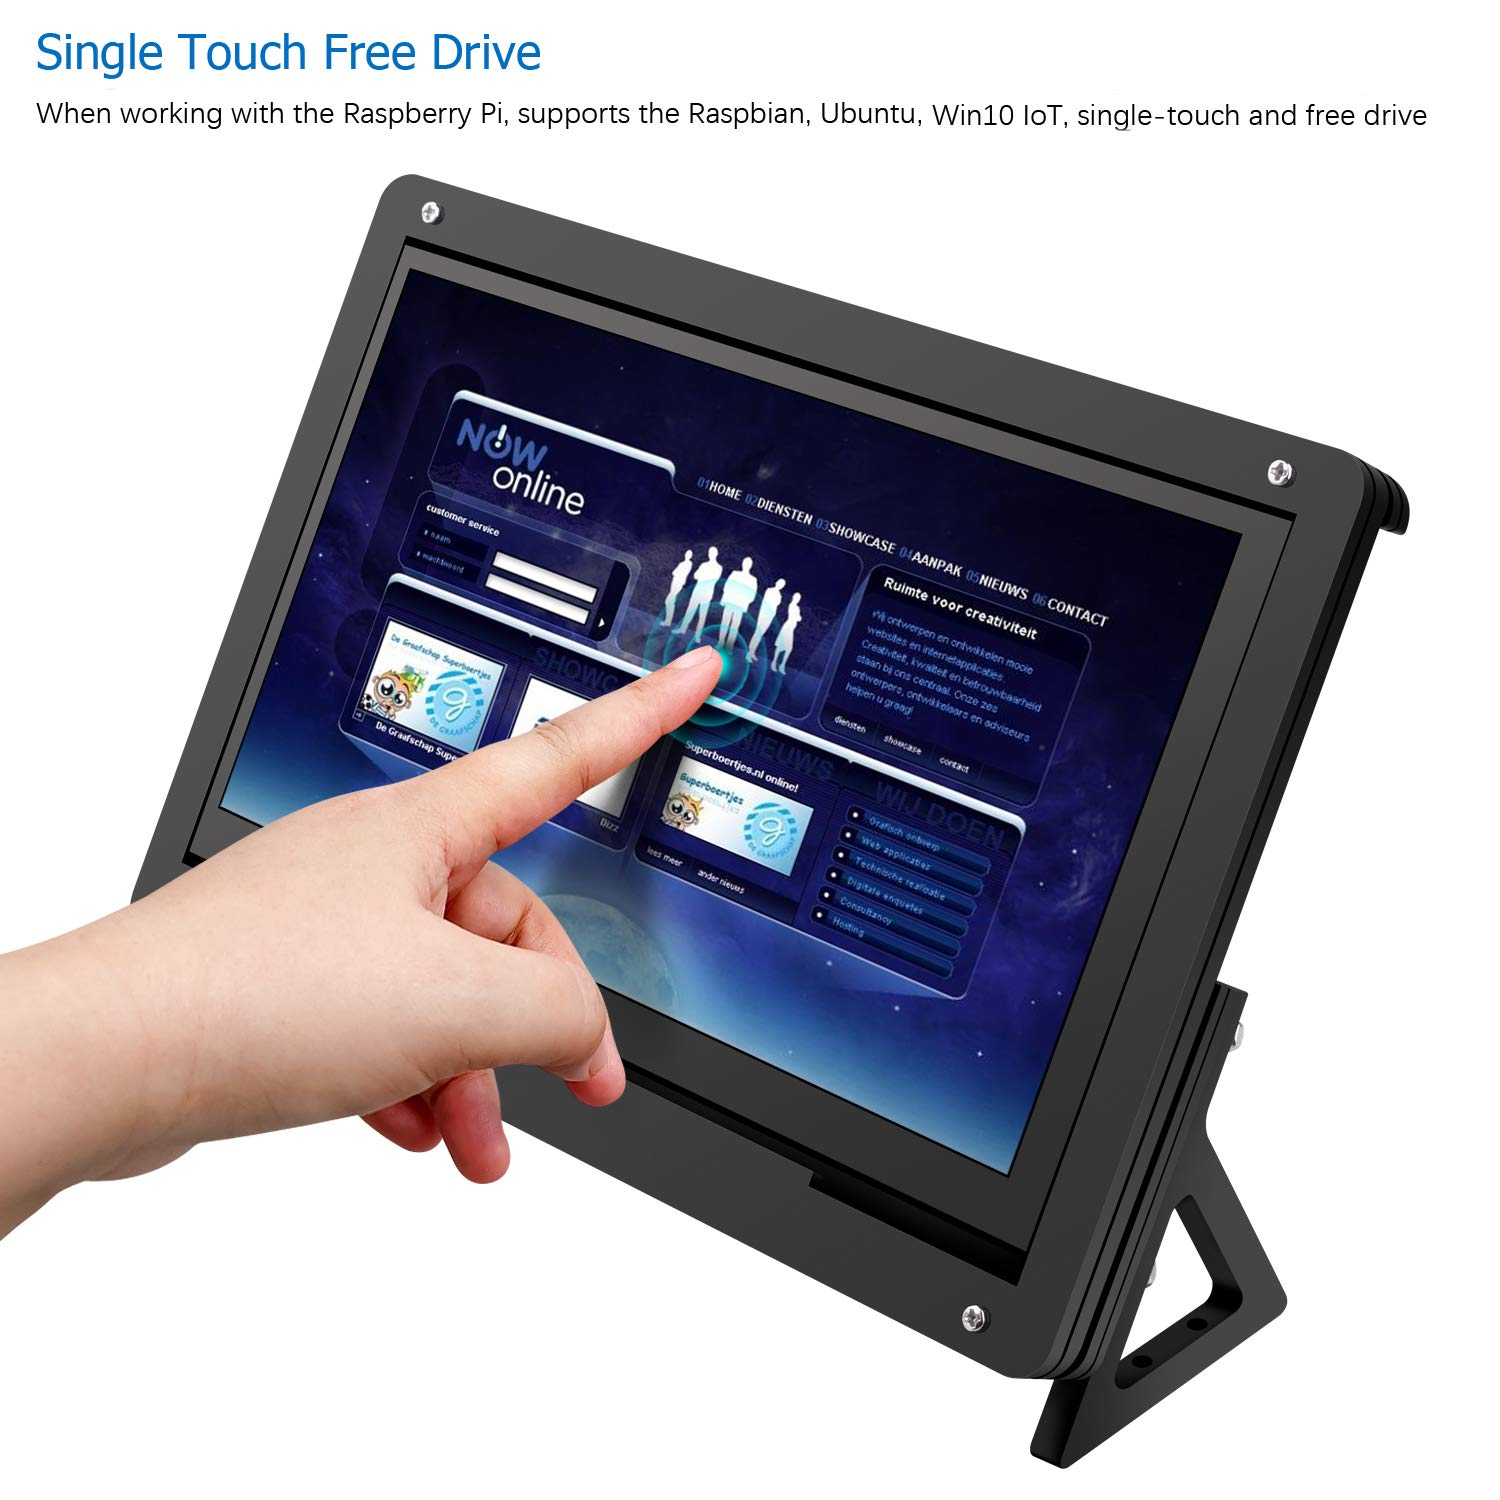 7 Inch TFT LCD Display HDMI Module 1024x600 for Raspberry Pi 3 2 Model B and RPI 1 B Longruner Raspberry Pi Touch Screen with Case Holder A BB Black PC Various Systems (with Protective Case)